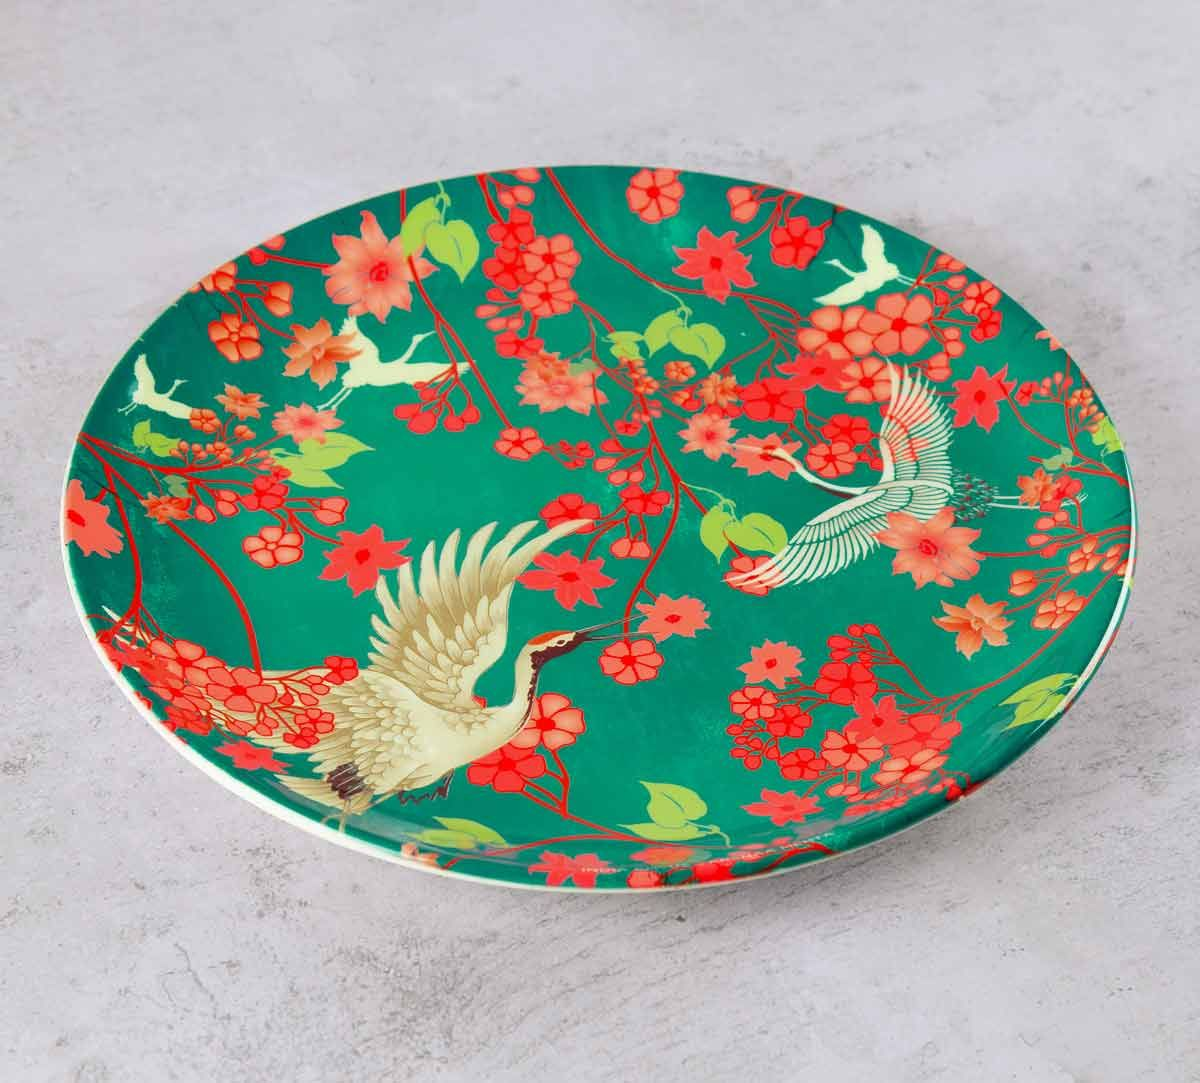 India Circus Flight of Cranes 10 inch Decorative and Snacks Platter